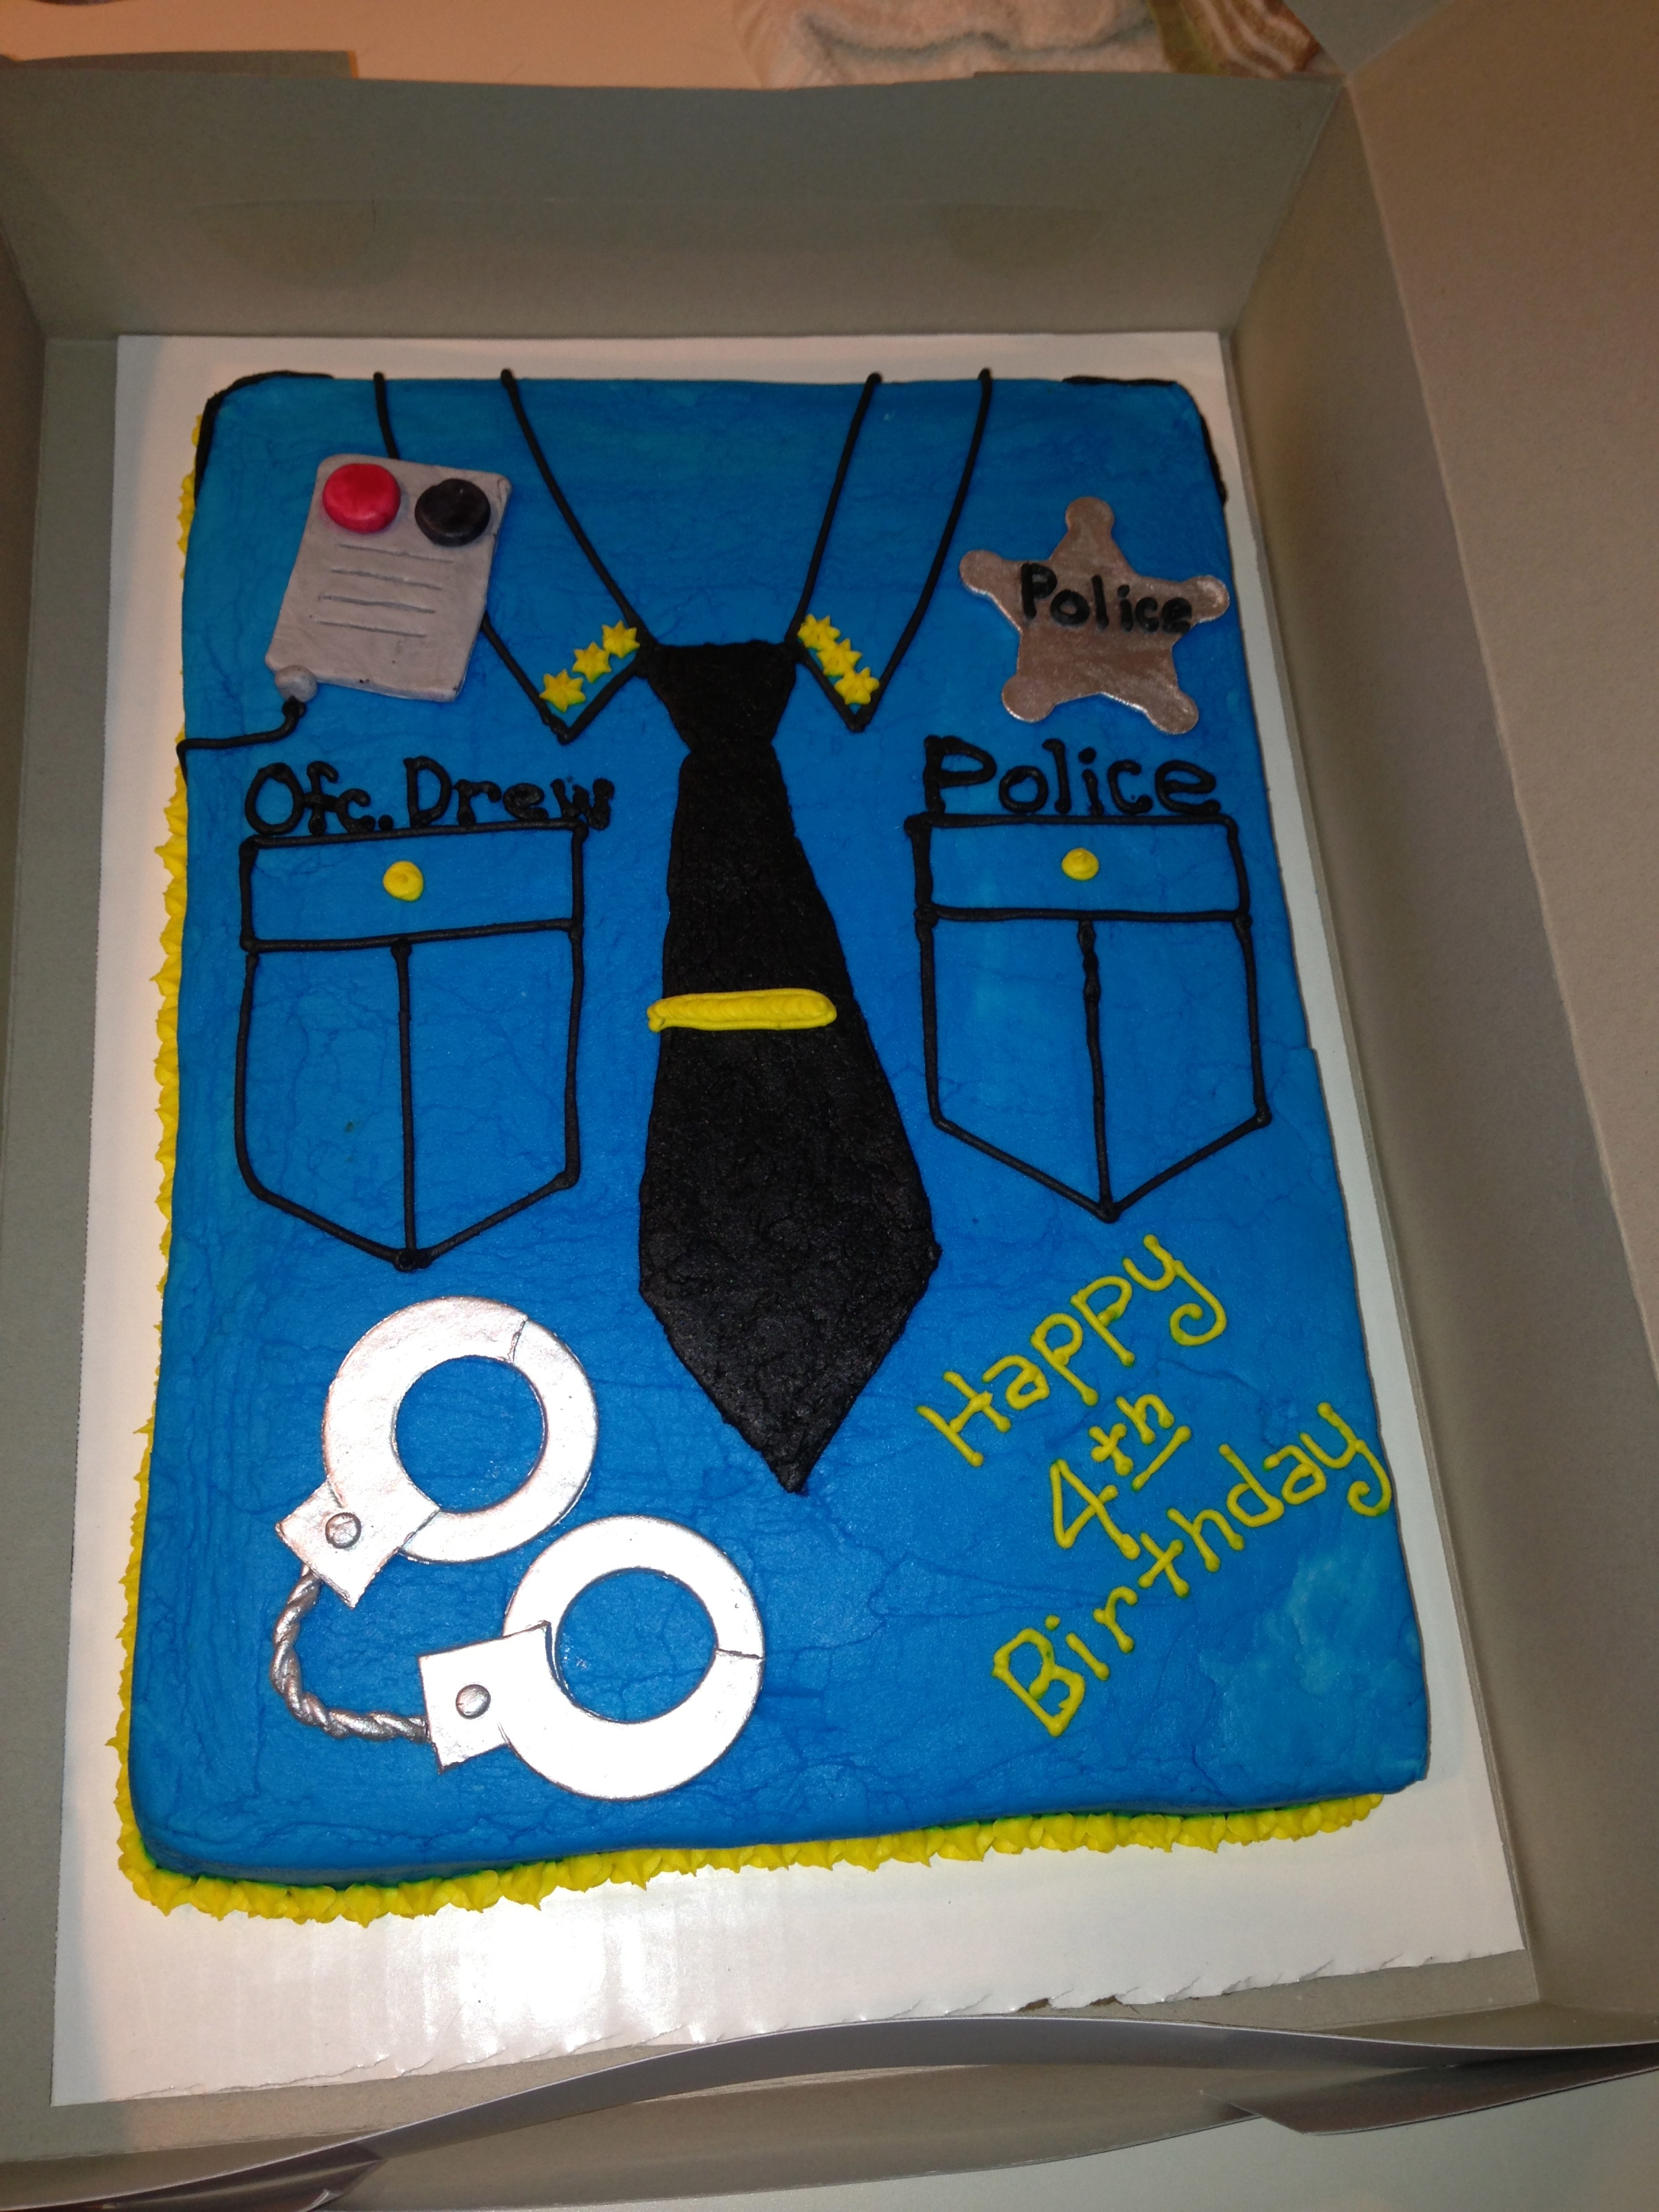 Cake Decorations For Police Cake : Birthday Cakes Sugar Rush